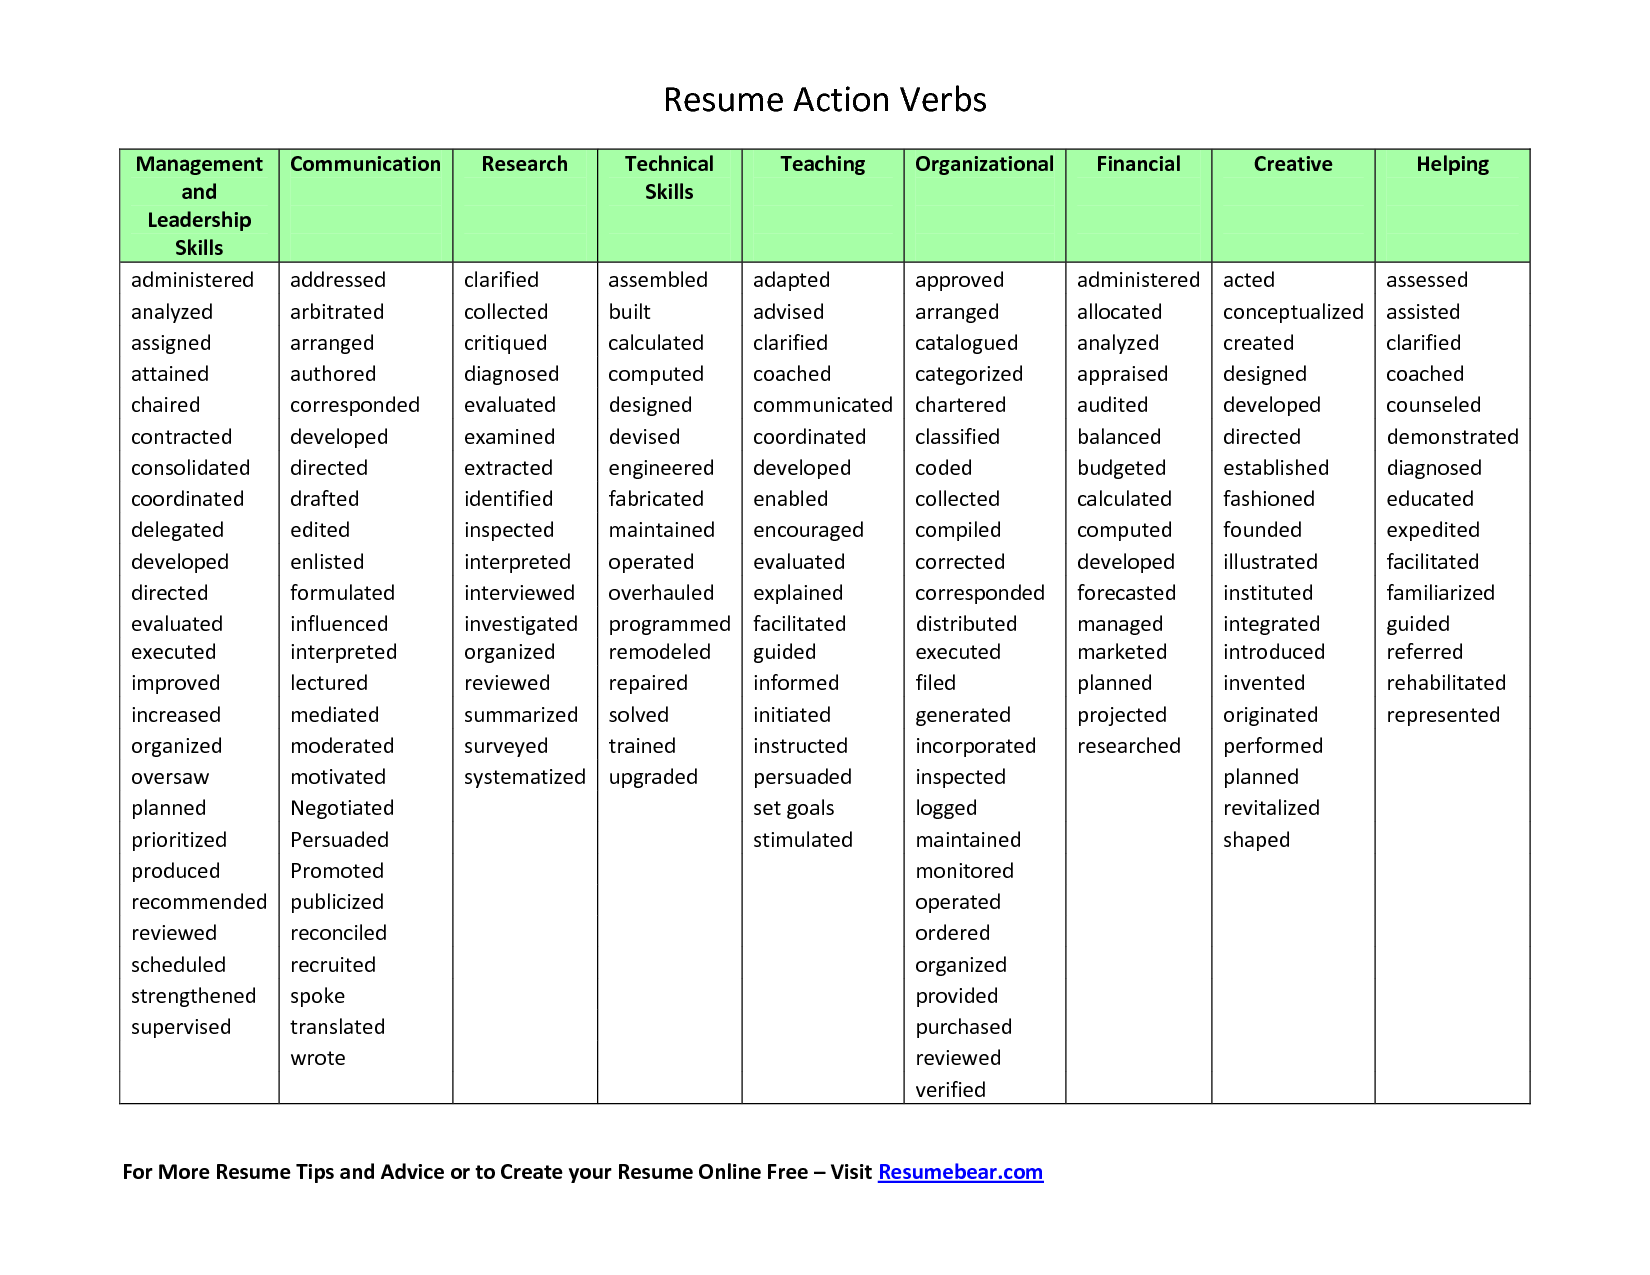 resume action verbs printable chart from resume bear application resume action verbs printable chart from resume bear